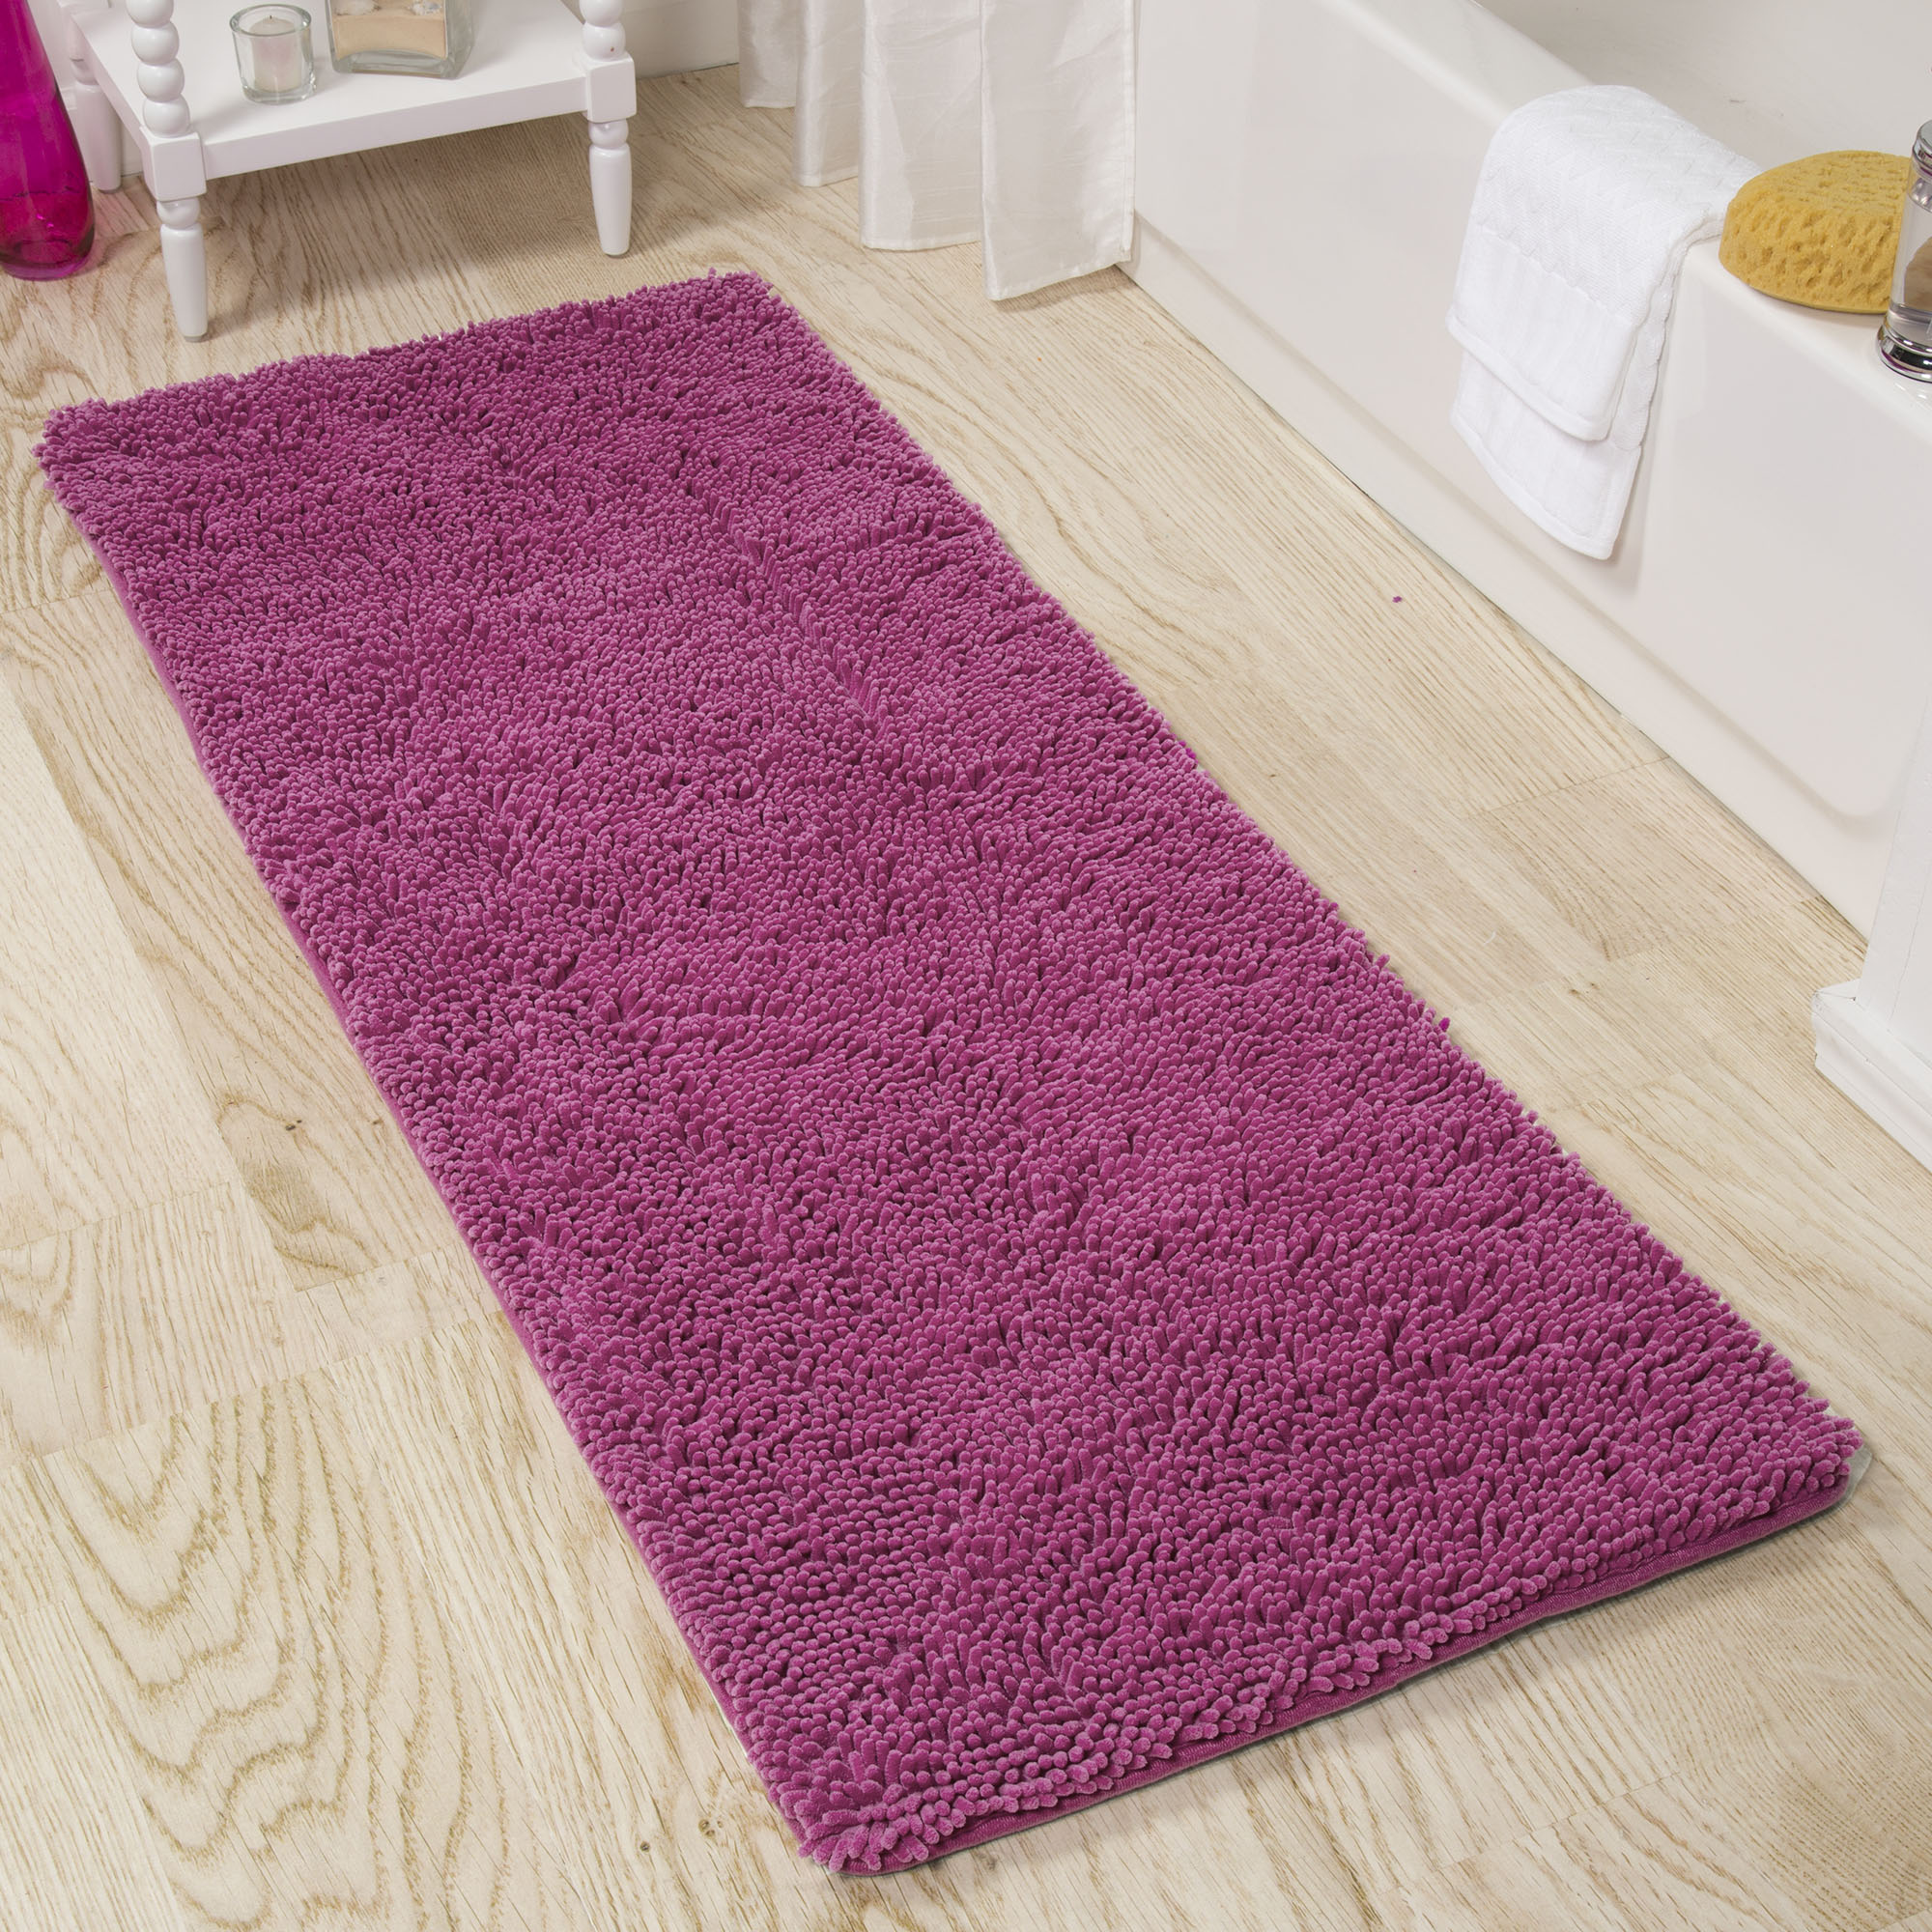 Lavish Home Memory Foam Shag Bath Mat 2-feet by 5-feet - Pink